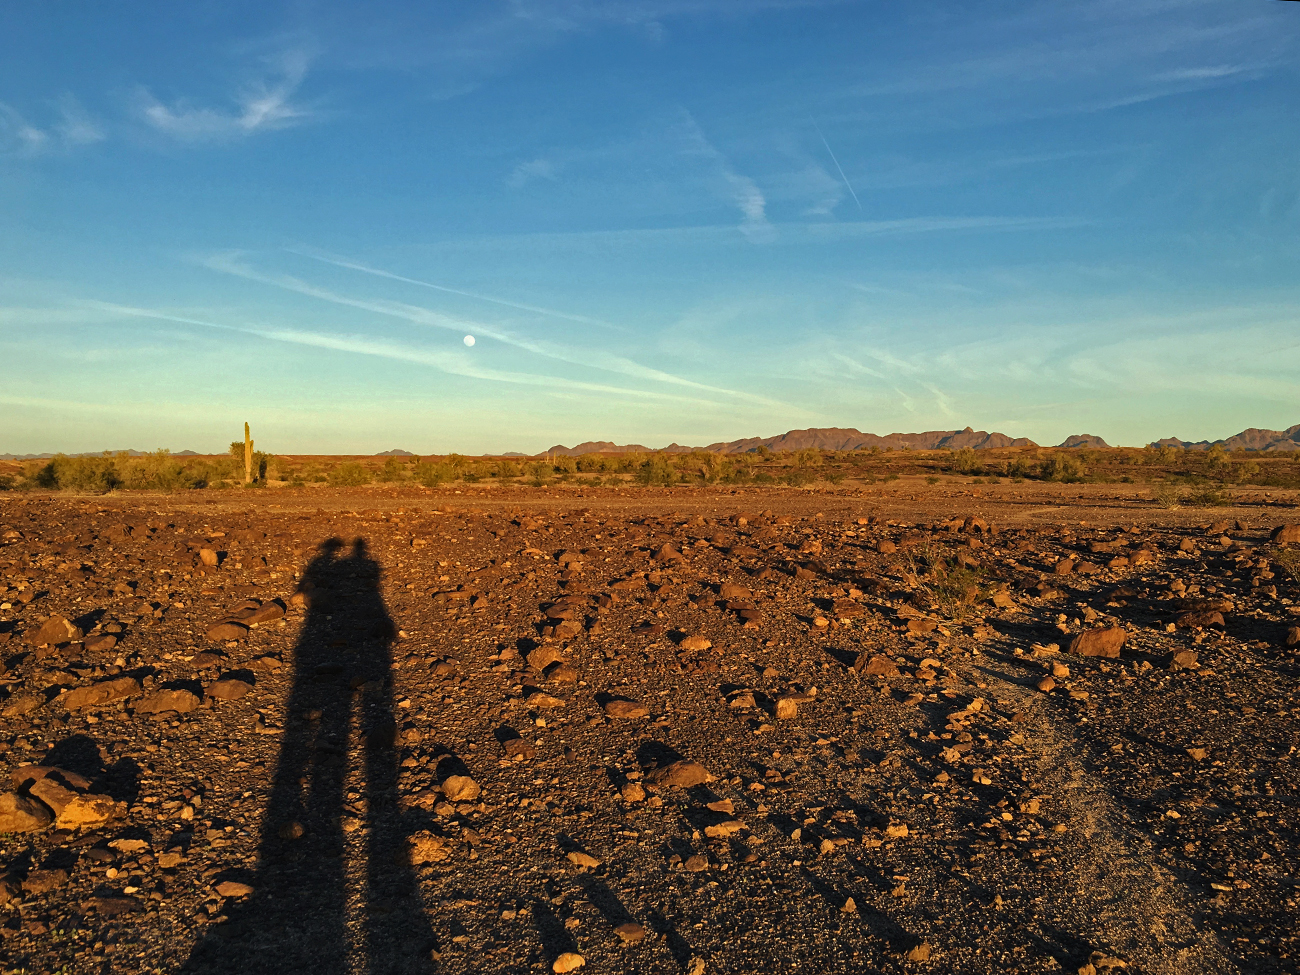 Our shadows stretching out into the desert with a saguaro in the distance and the moon starting to show in the sky